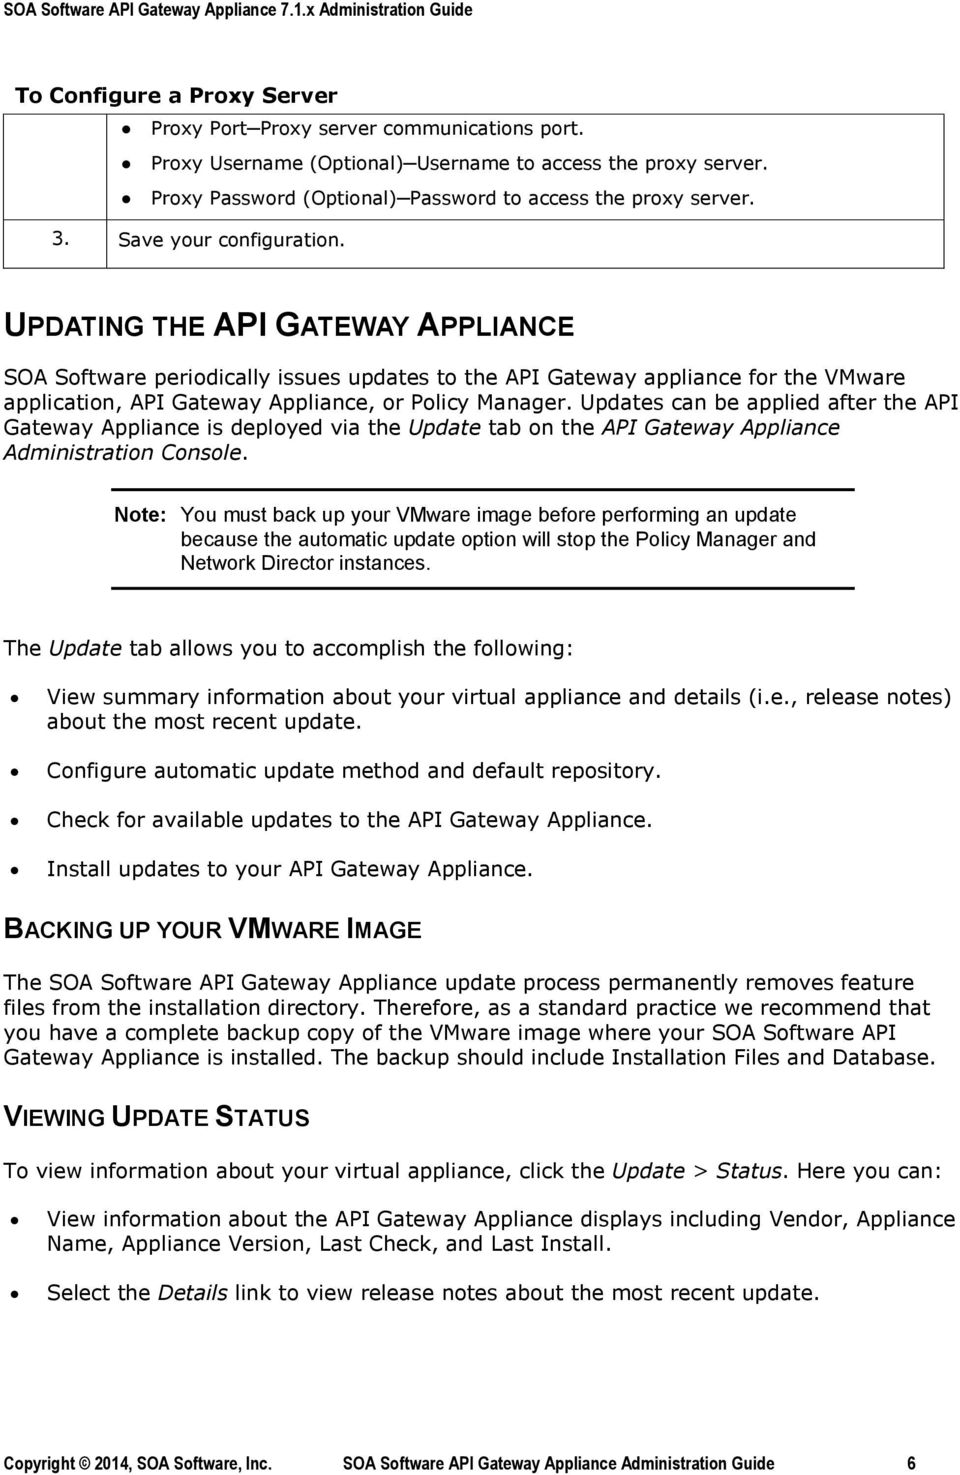 UPDATING THE API GATEWAY APPLIANCE SOA Software periodically issues updates to the API Gateway appliance for the VMware application, API Gateway Appliance, or Policy Manager.